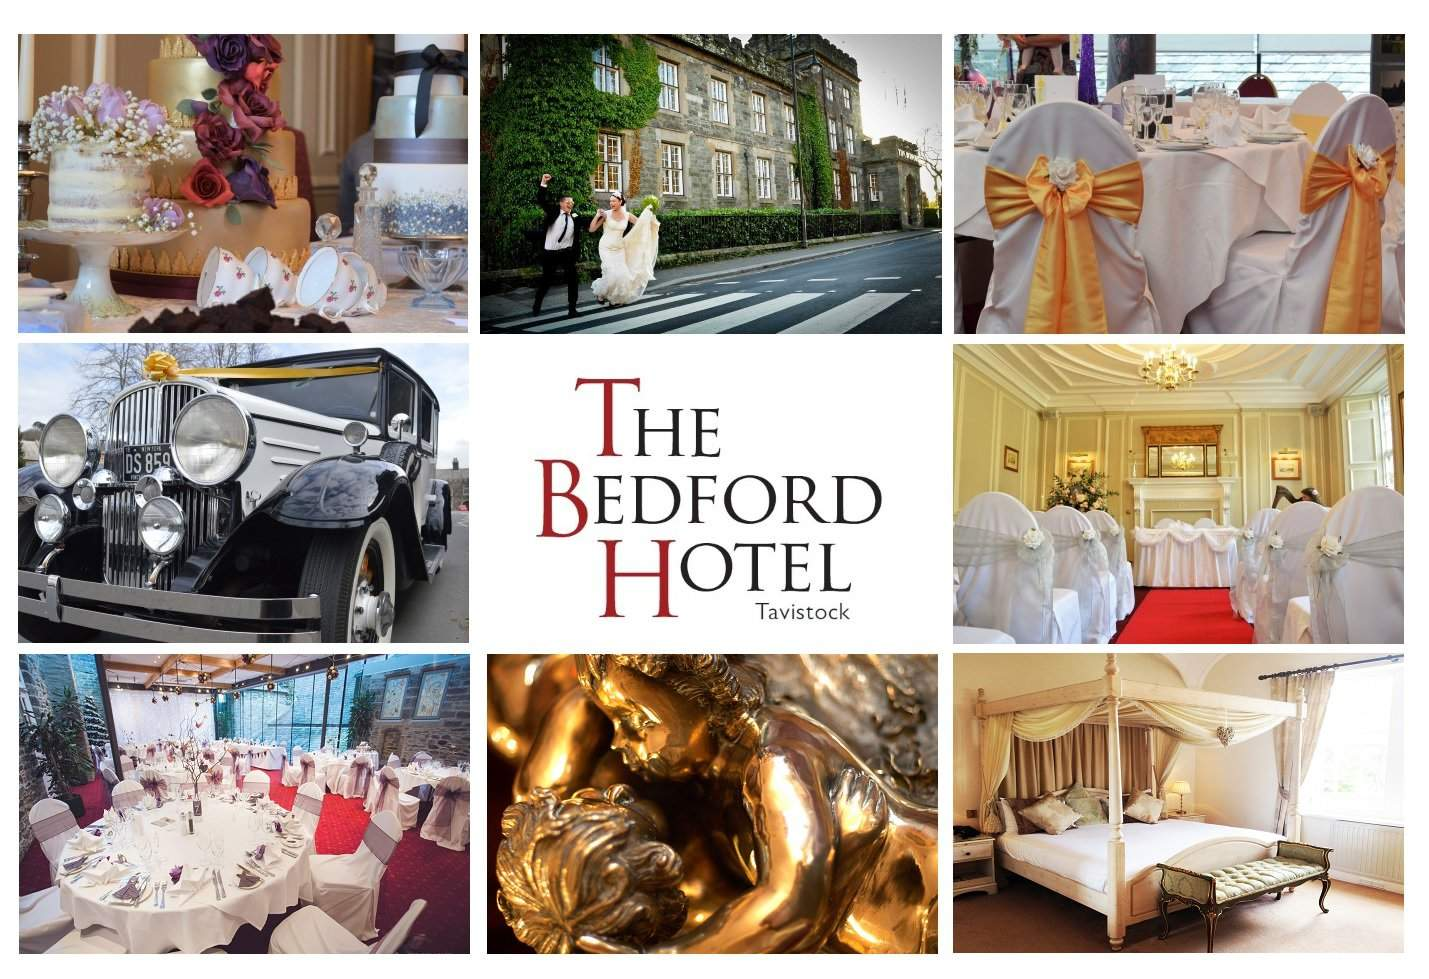 Weddings at The Bedford Hotel, Tavistock, Devon